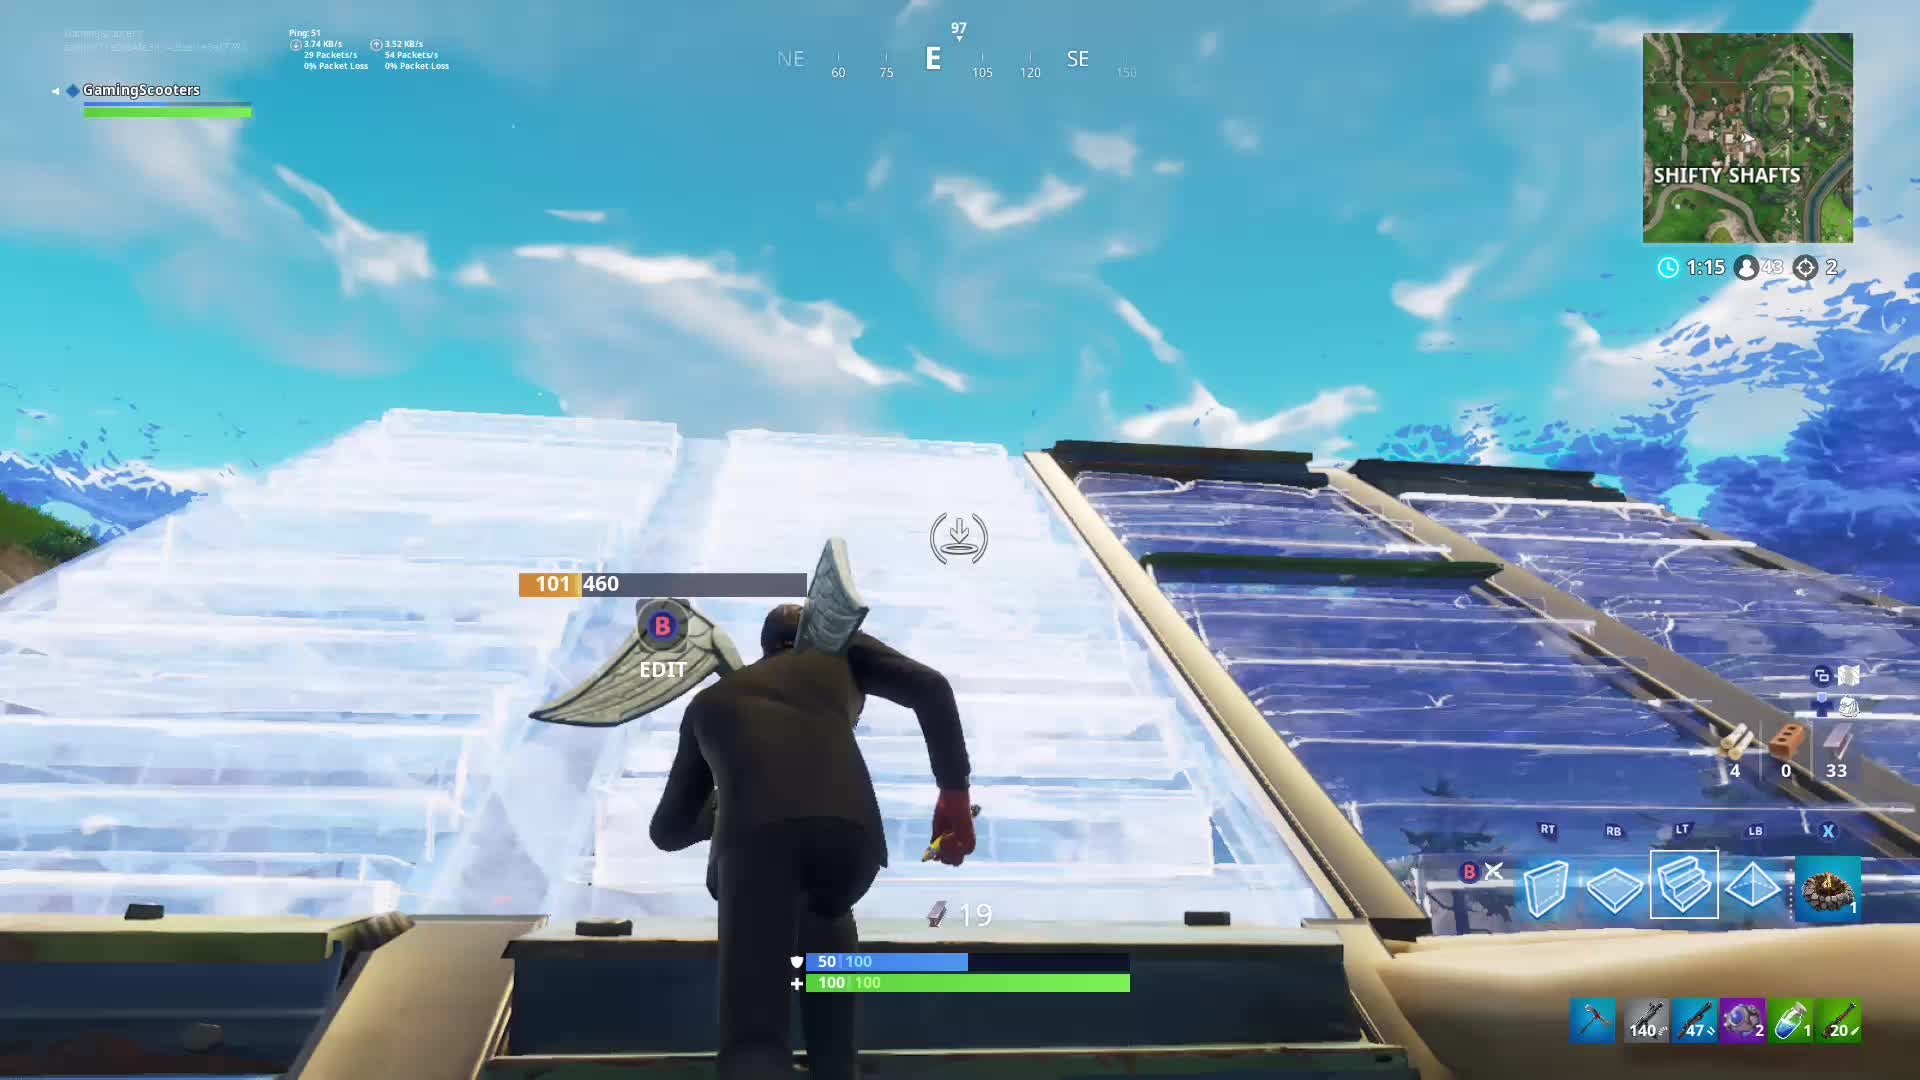 Fortnite: General - Just a clip from 762 days ago! Lol video cover image 0